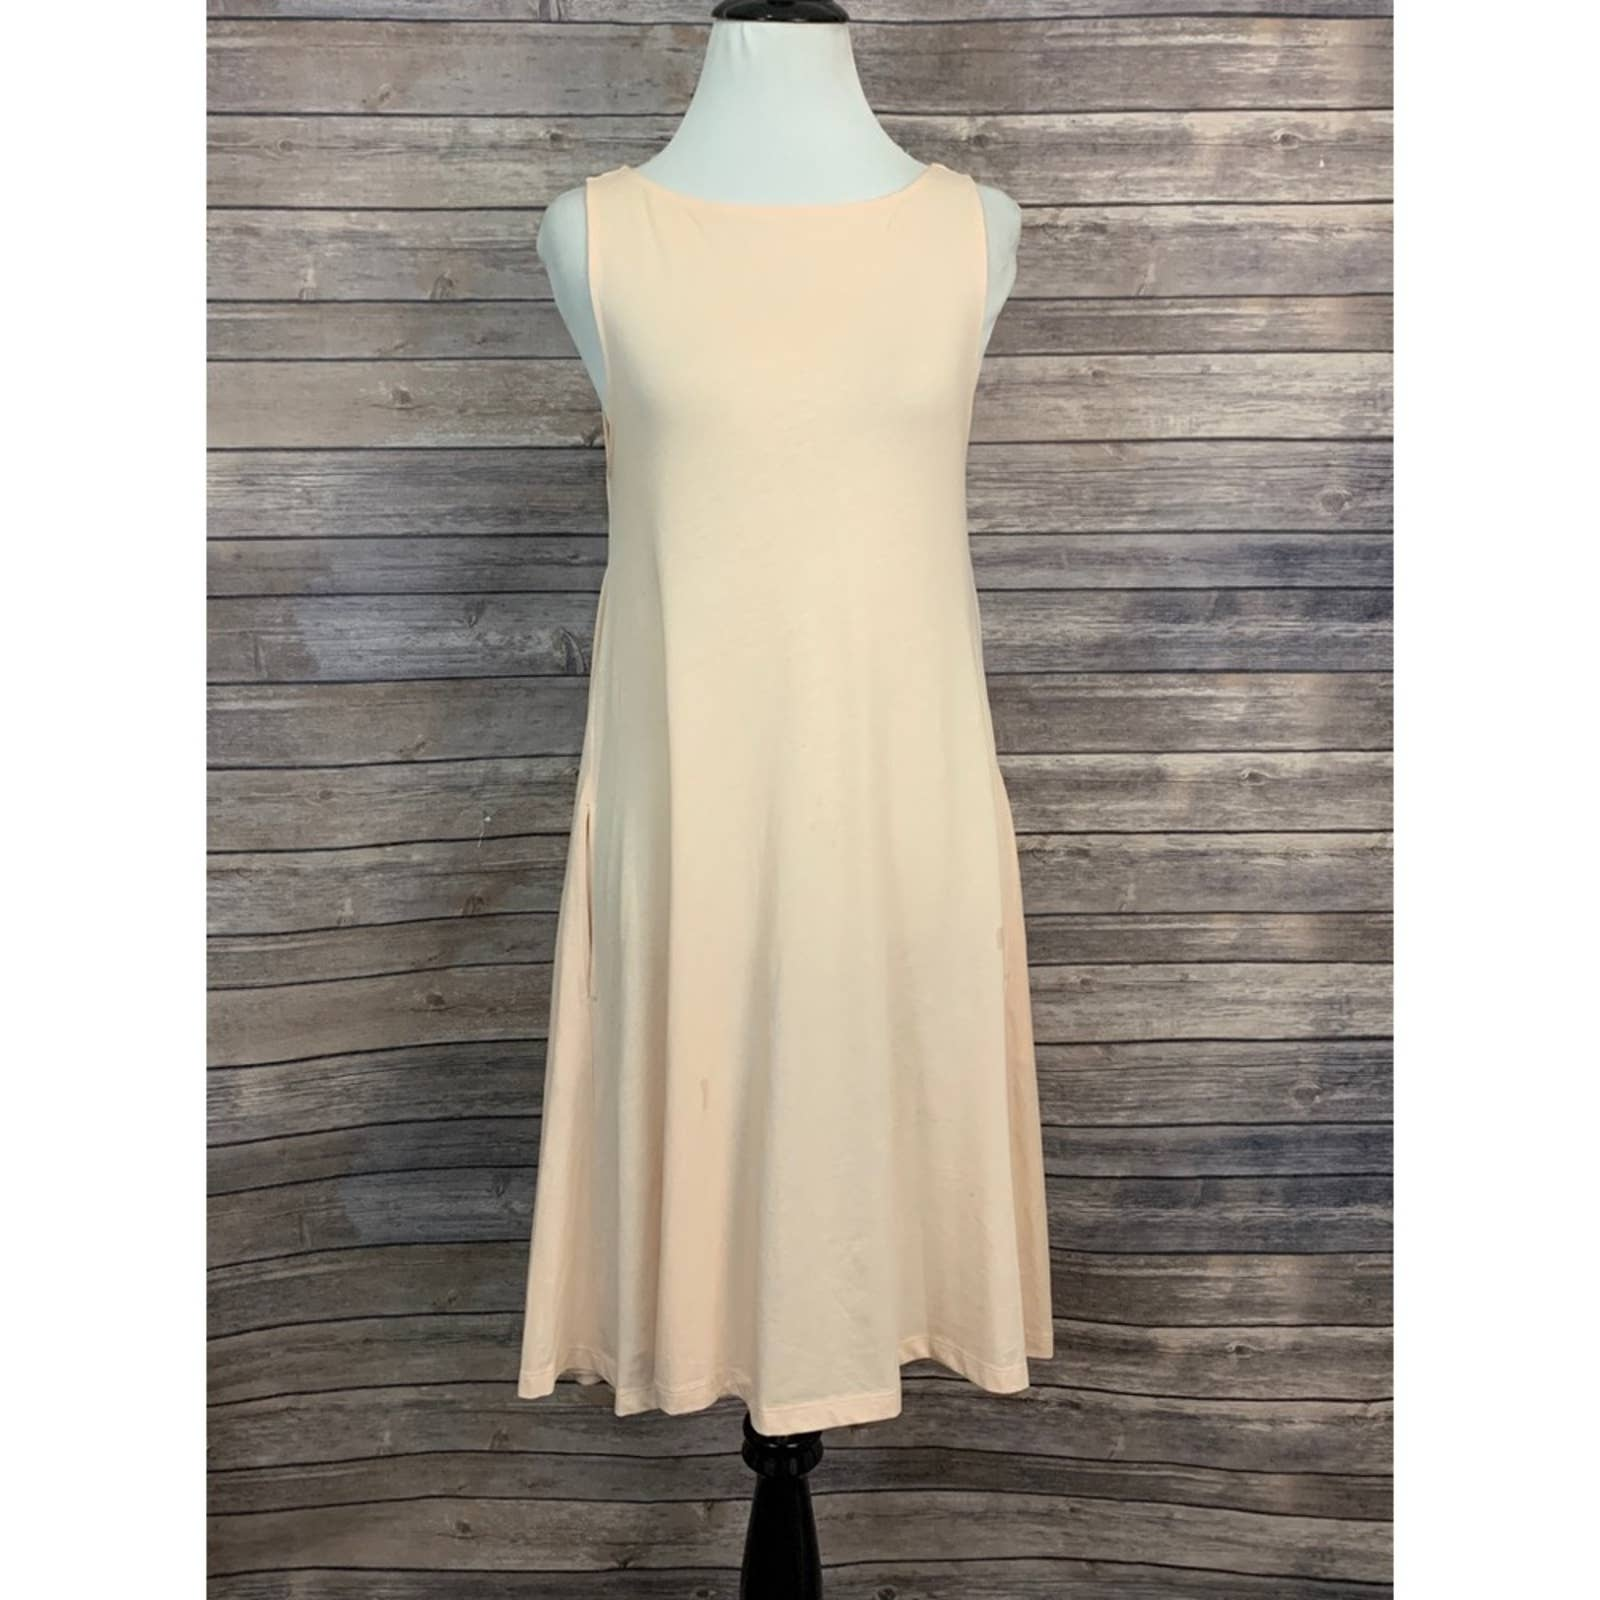 Product Image 1 - Demylee New York Dress  Pre-owned Condition: very